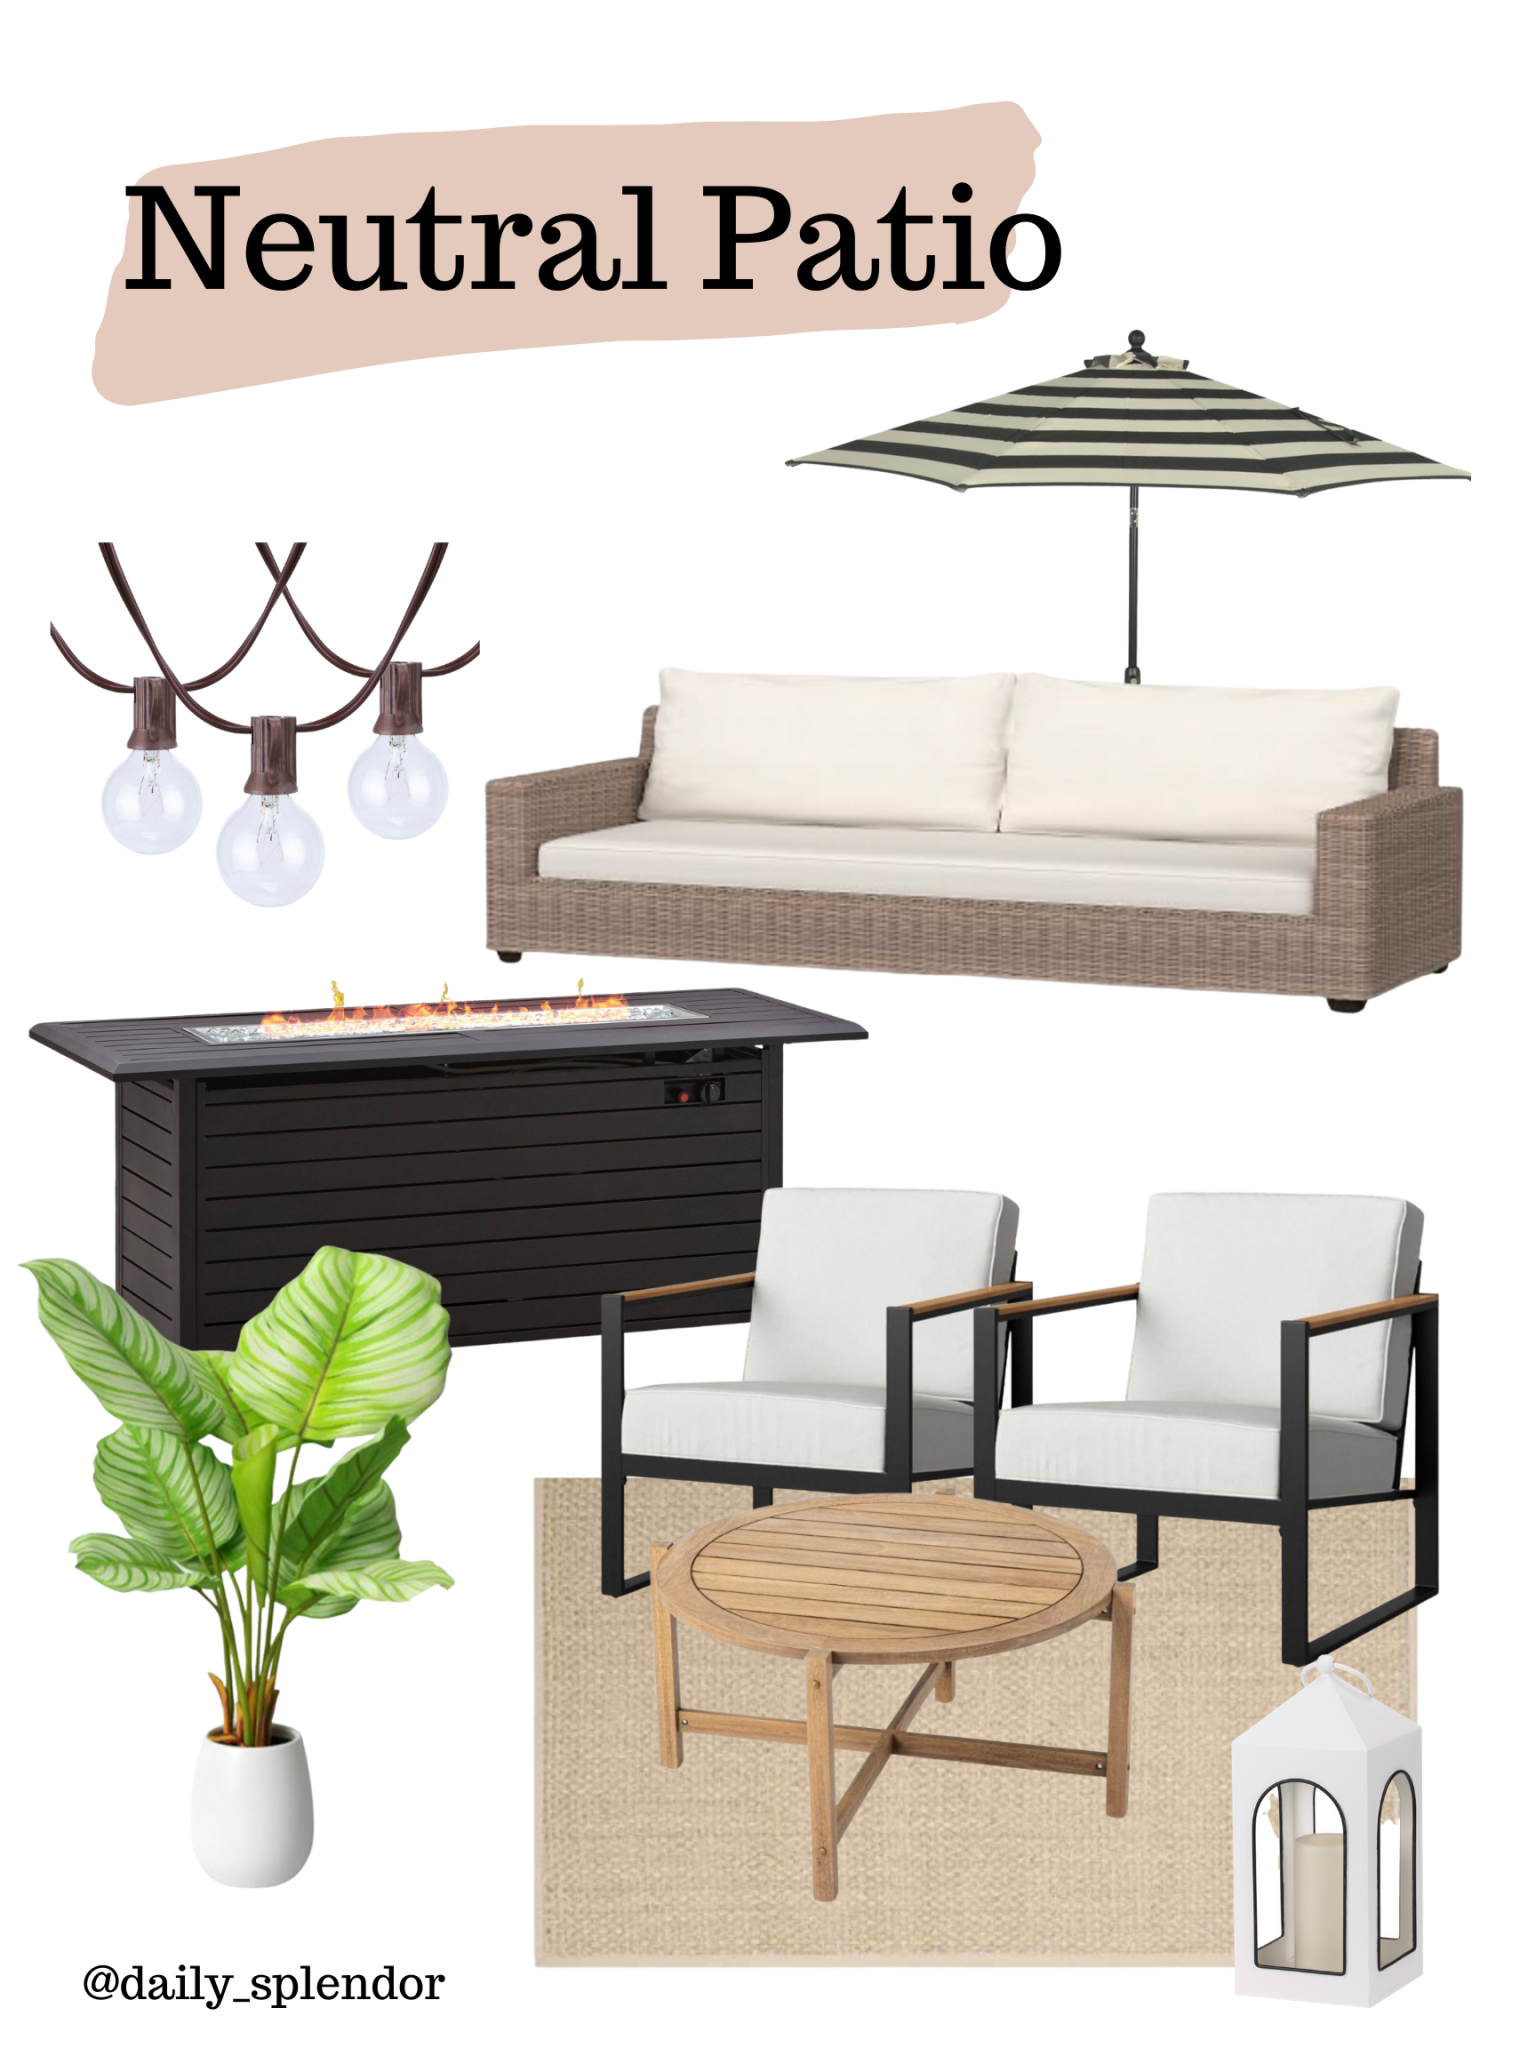 Patio refresh ideas | Daily Splendor Life and Style Blog | Neutral patio vibe #outdoorfurniture #outdoorliving #summertime #patiodecor #patiofurniture #walmart #targetstyle #contemporarydesign #transitionaldesign #neutraldesign #classicstyle